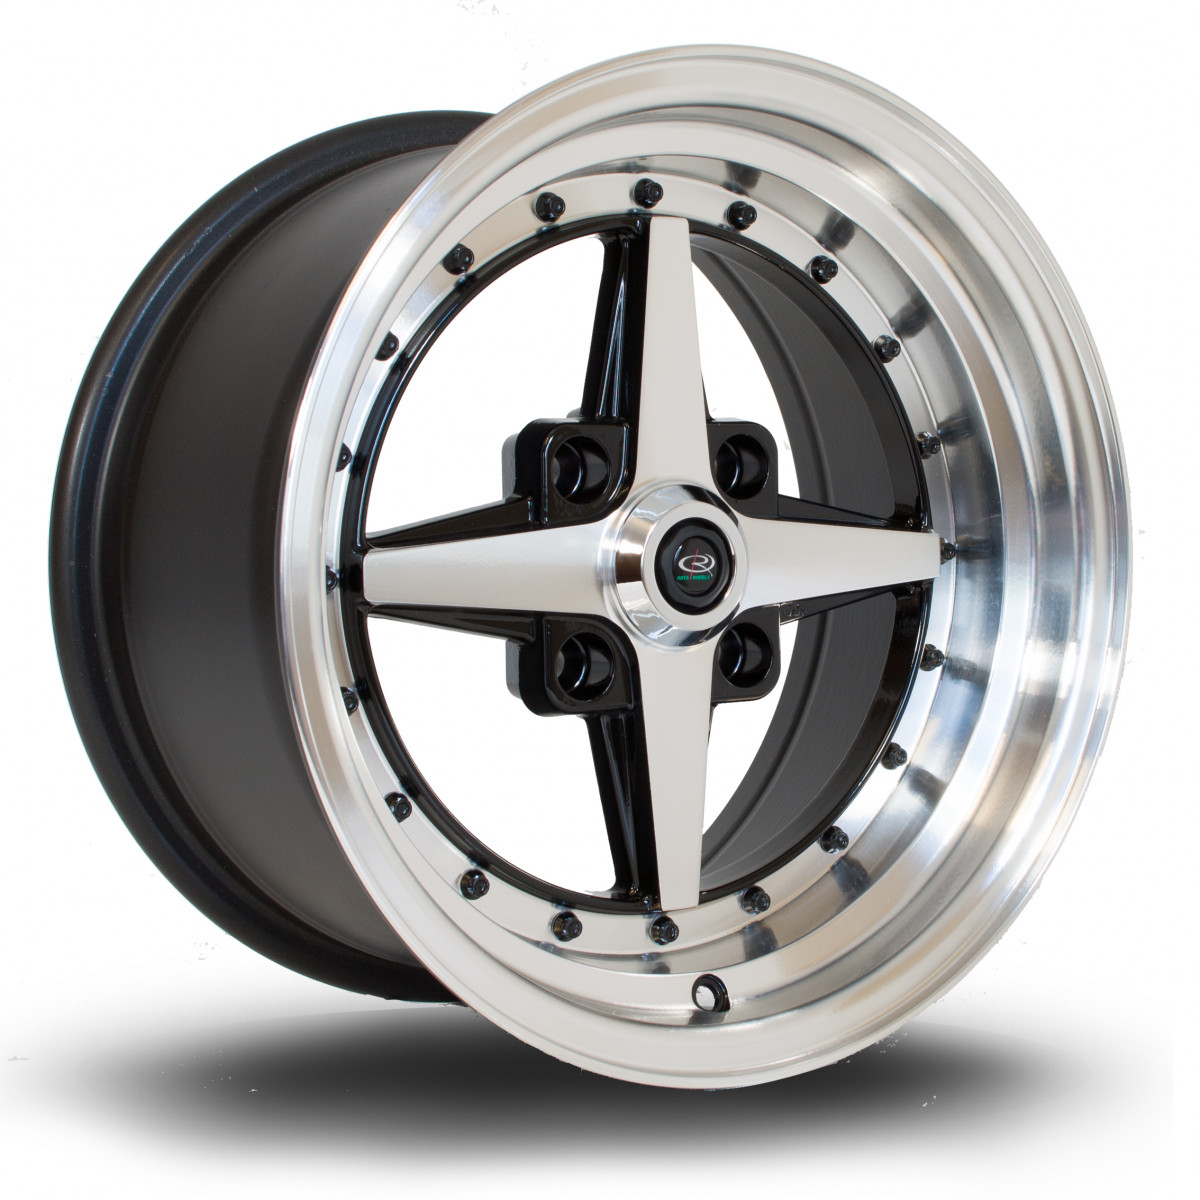 Zero 15x8 4x114 ET10 Gloss Black with Polished Face